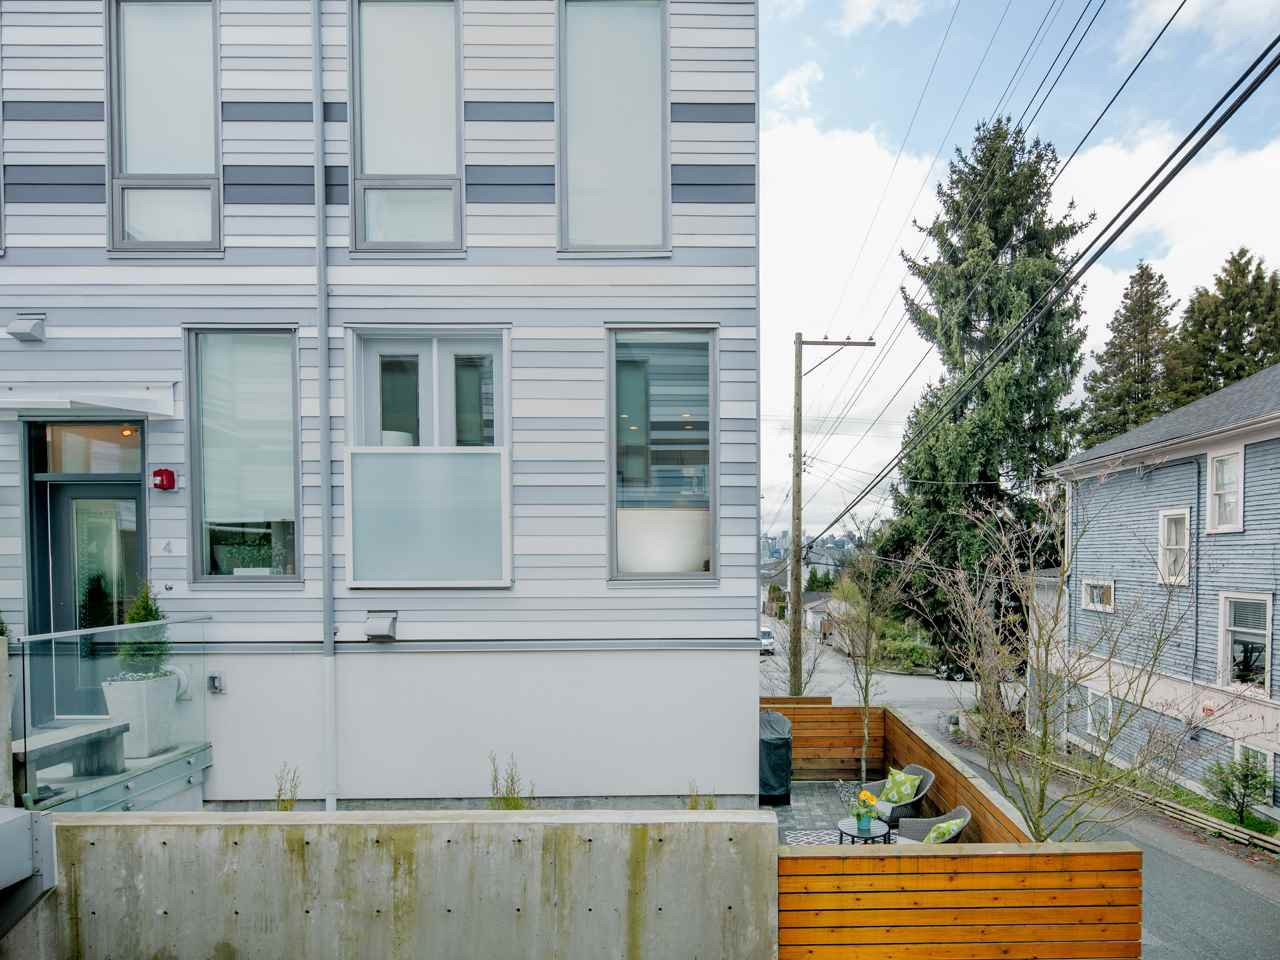 Photo 16: Photos: 4 1411 E 1ST AVENUE in Vancouver: Grandview VE Townhouse for sale (Vancouver East)  : MLS®# R2254853